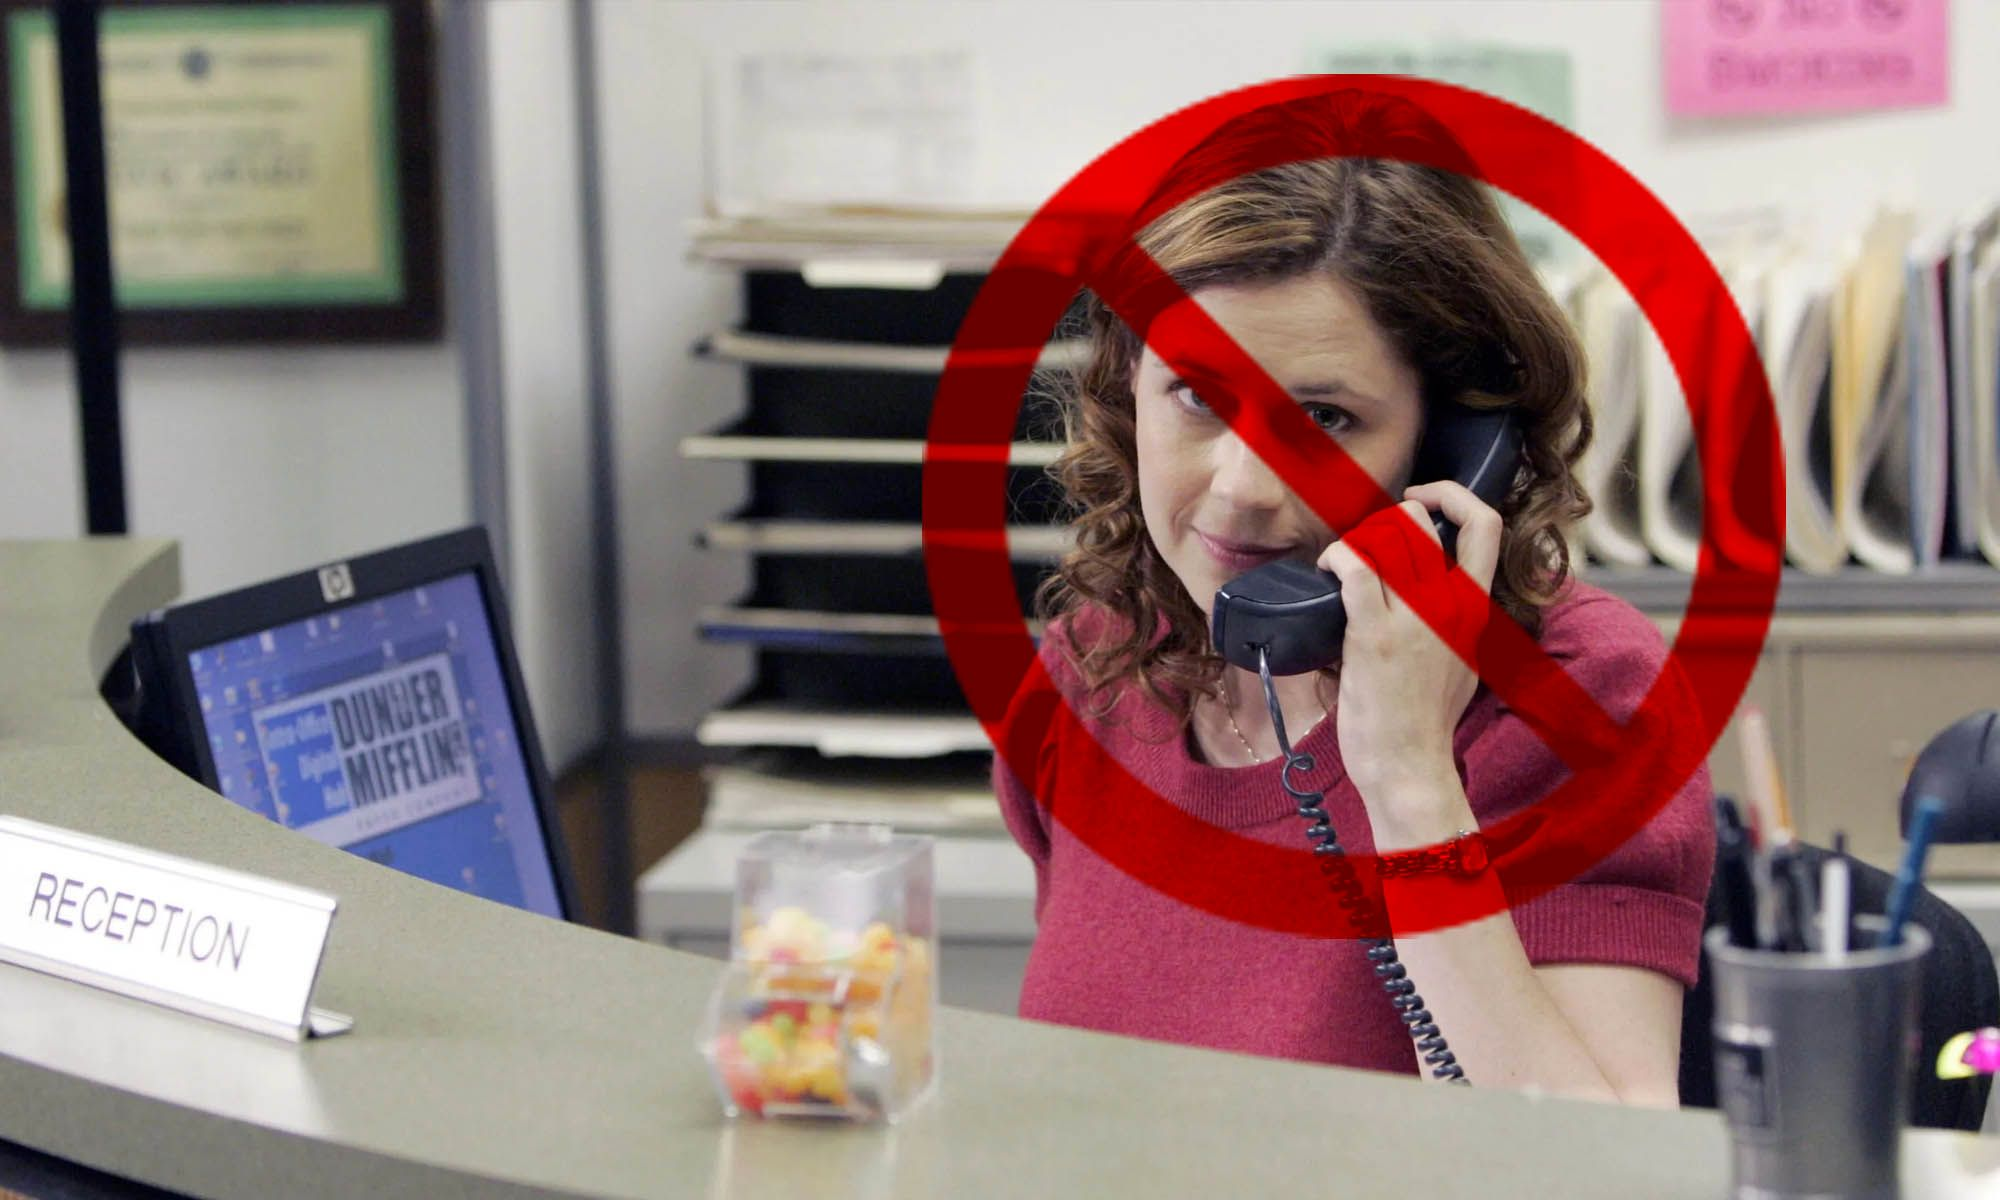 Small businesses have a lot of needs, but a receptionist isn't one of them